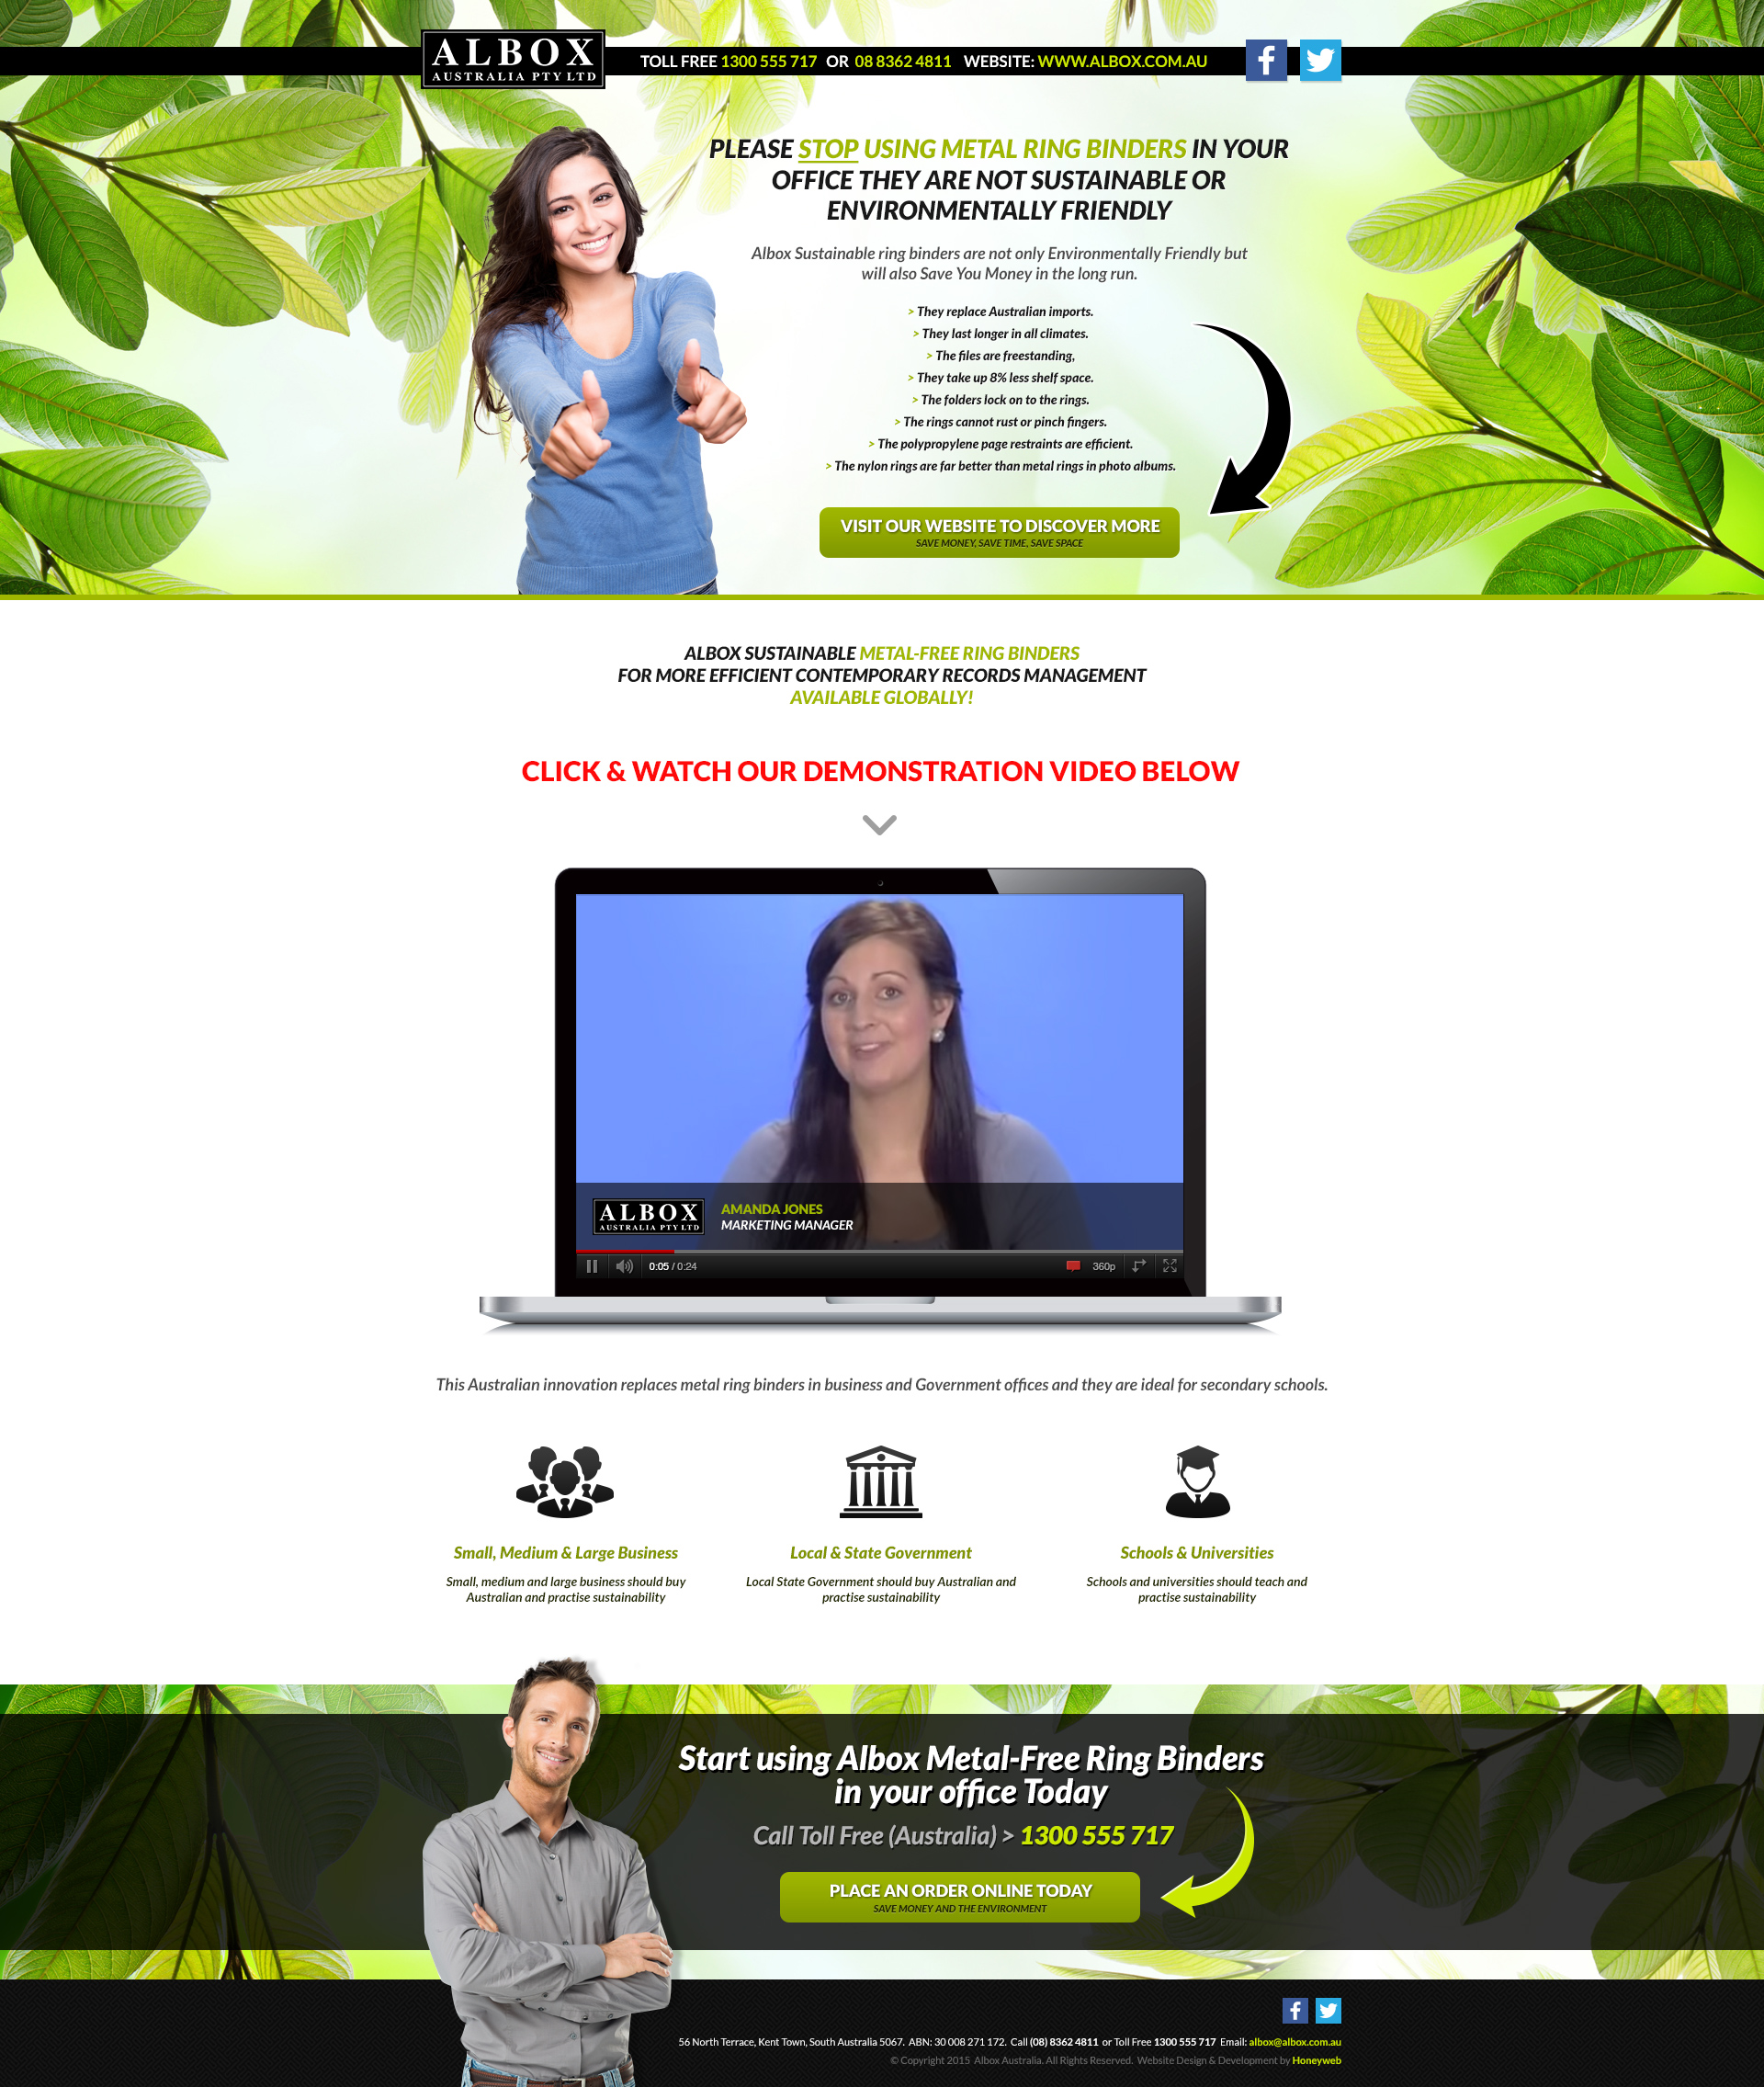 Check out the NEW Albox Australian (Sustainable Ring Binders) landing Page Website Designed & Constructed by Honeyweb